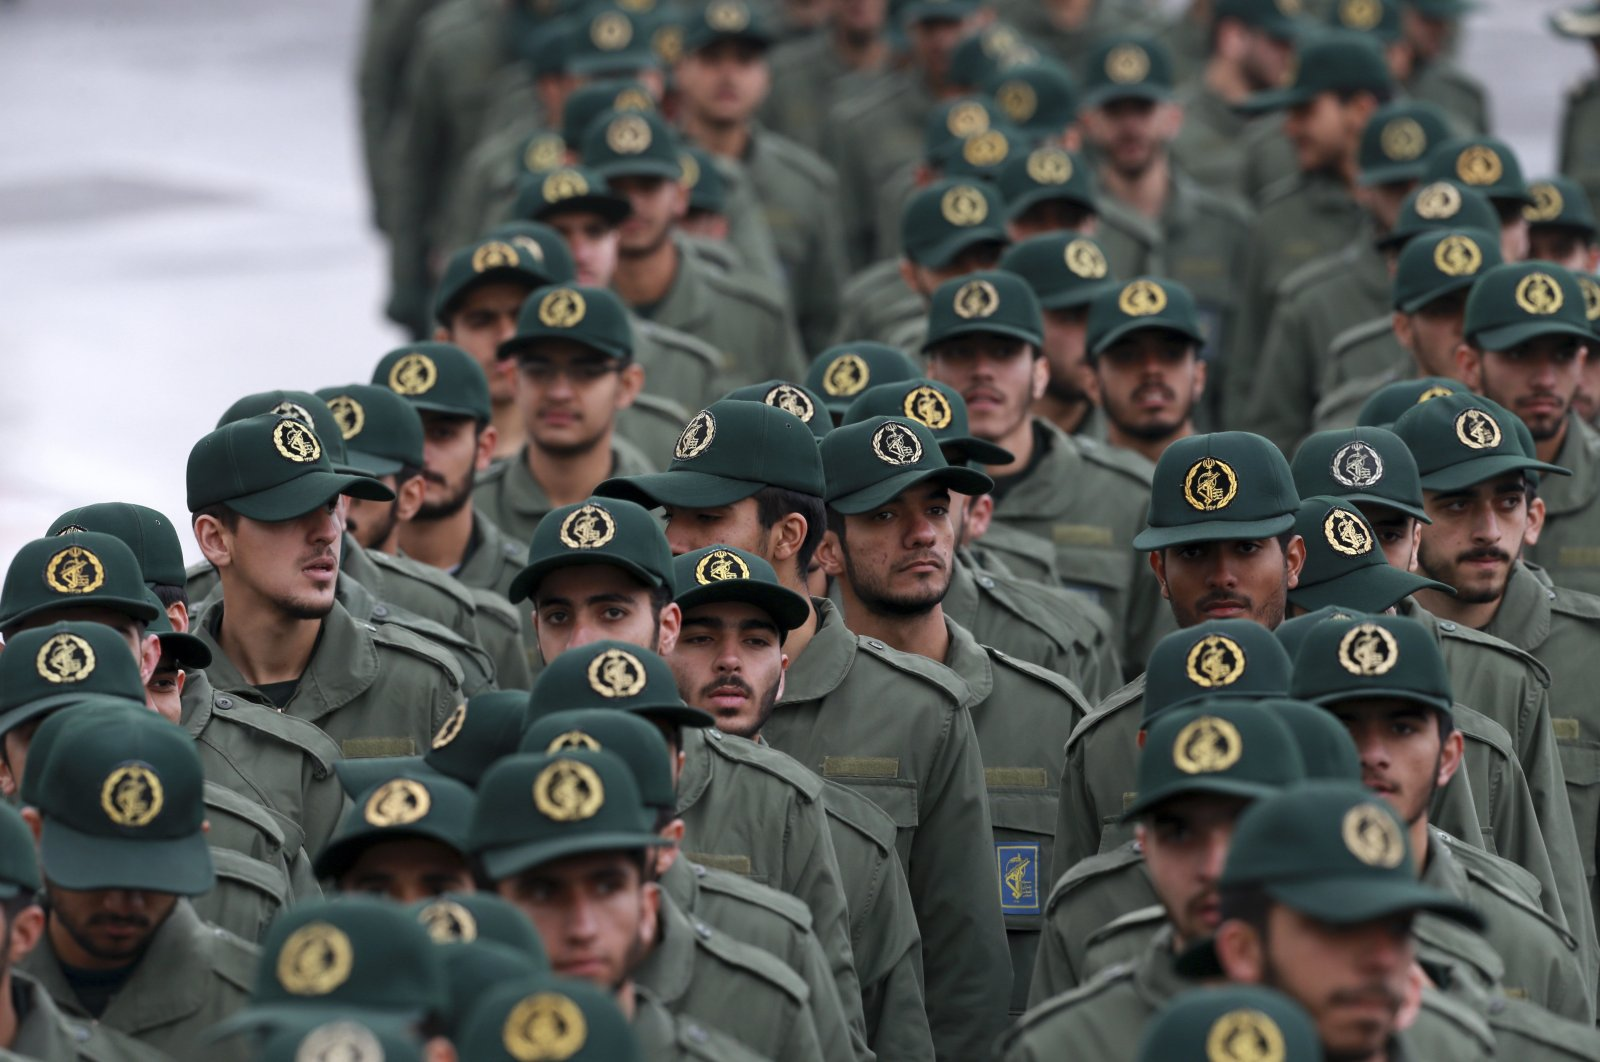 In this Feb, 11, 2019 file photo, Iranian Revolutionary Guard members arrive for a ceremony celebrating the 40th anniversary of the Islamic Revolution, at the Azadi, or Freedom, Square, in Tehran, Iran. (AP Photo)